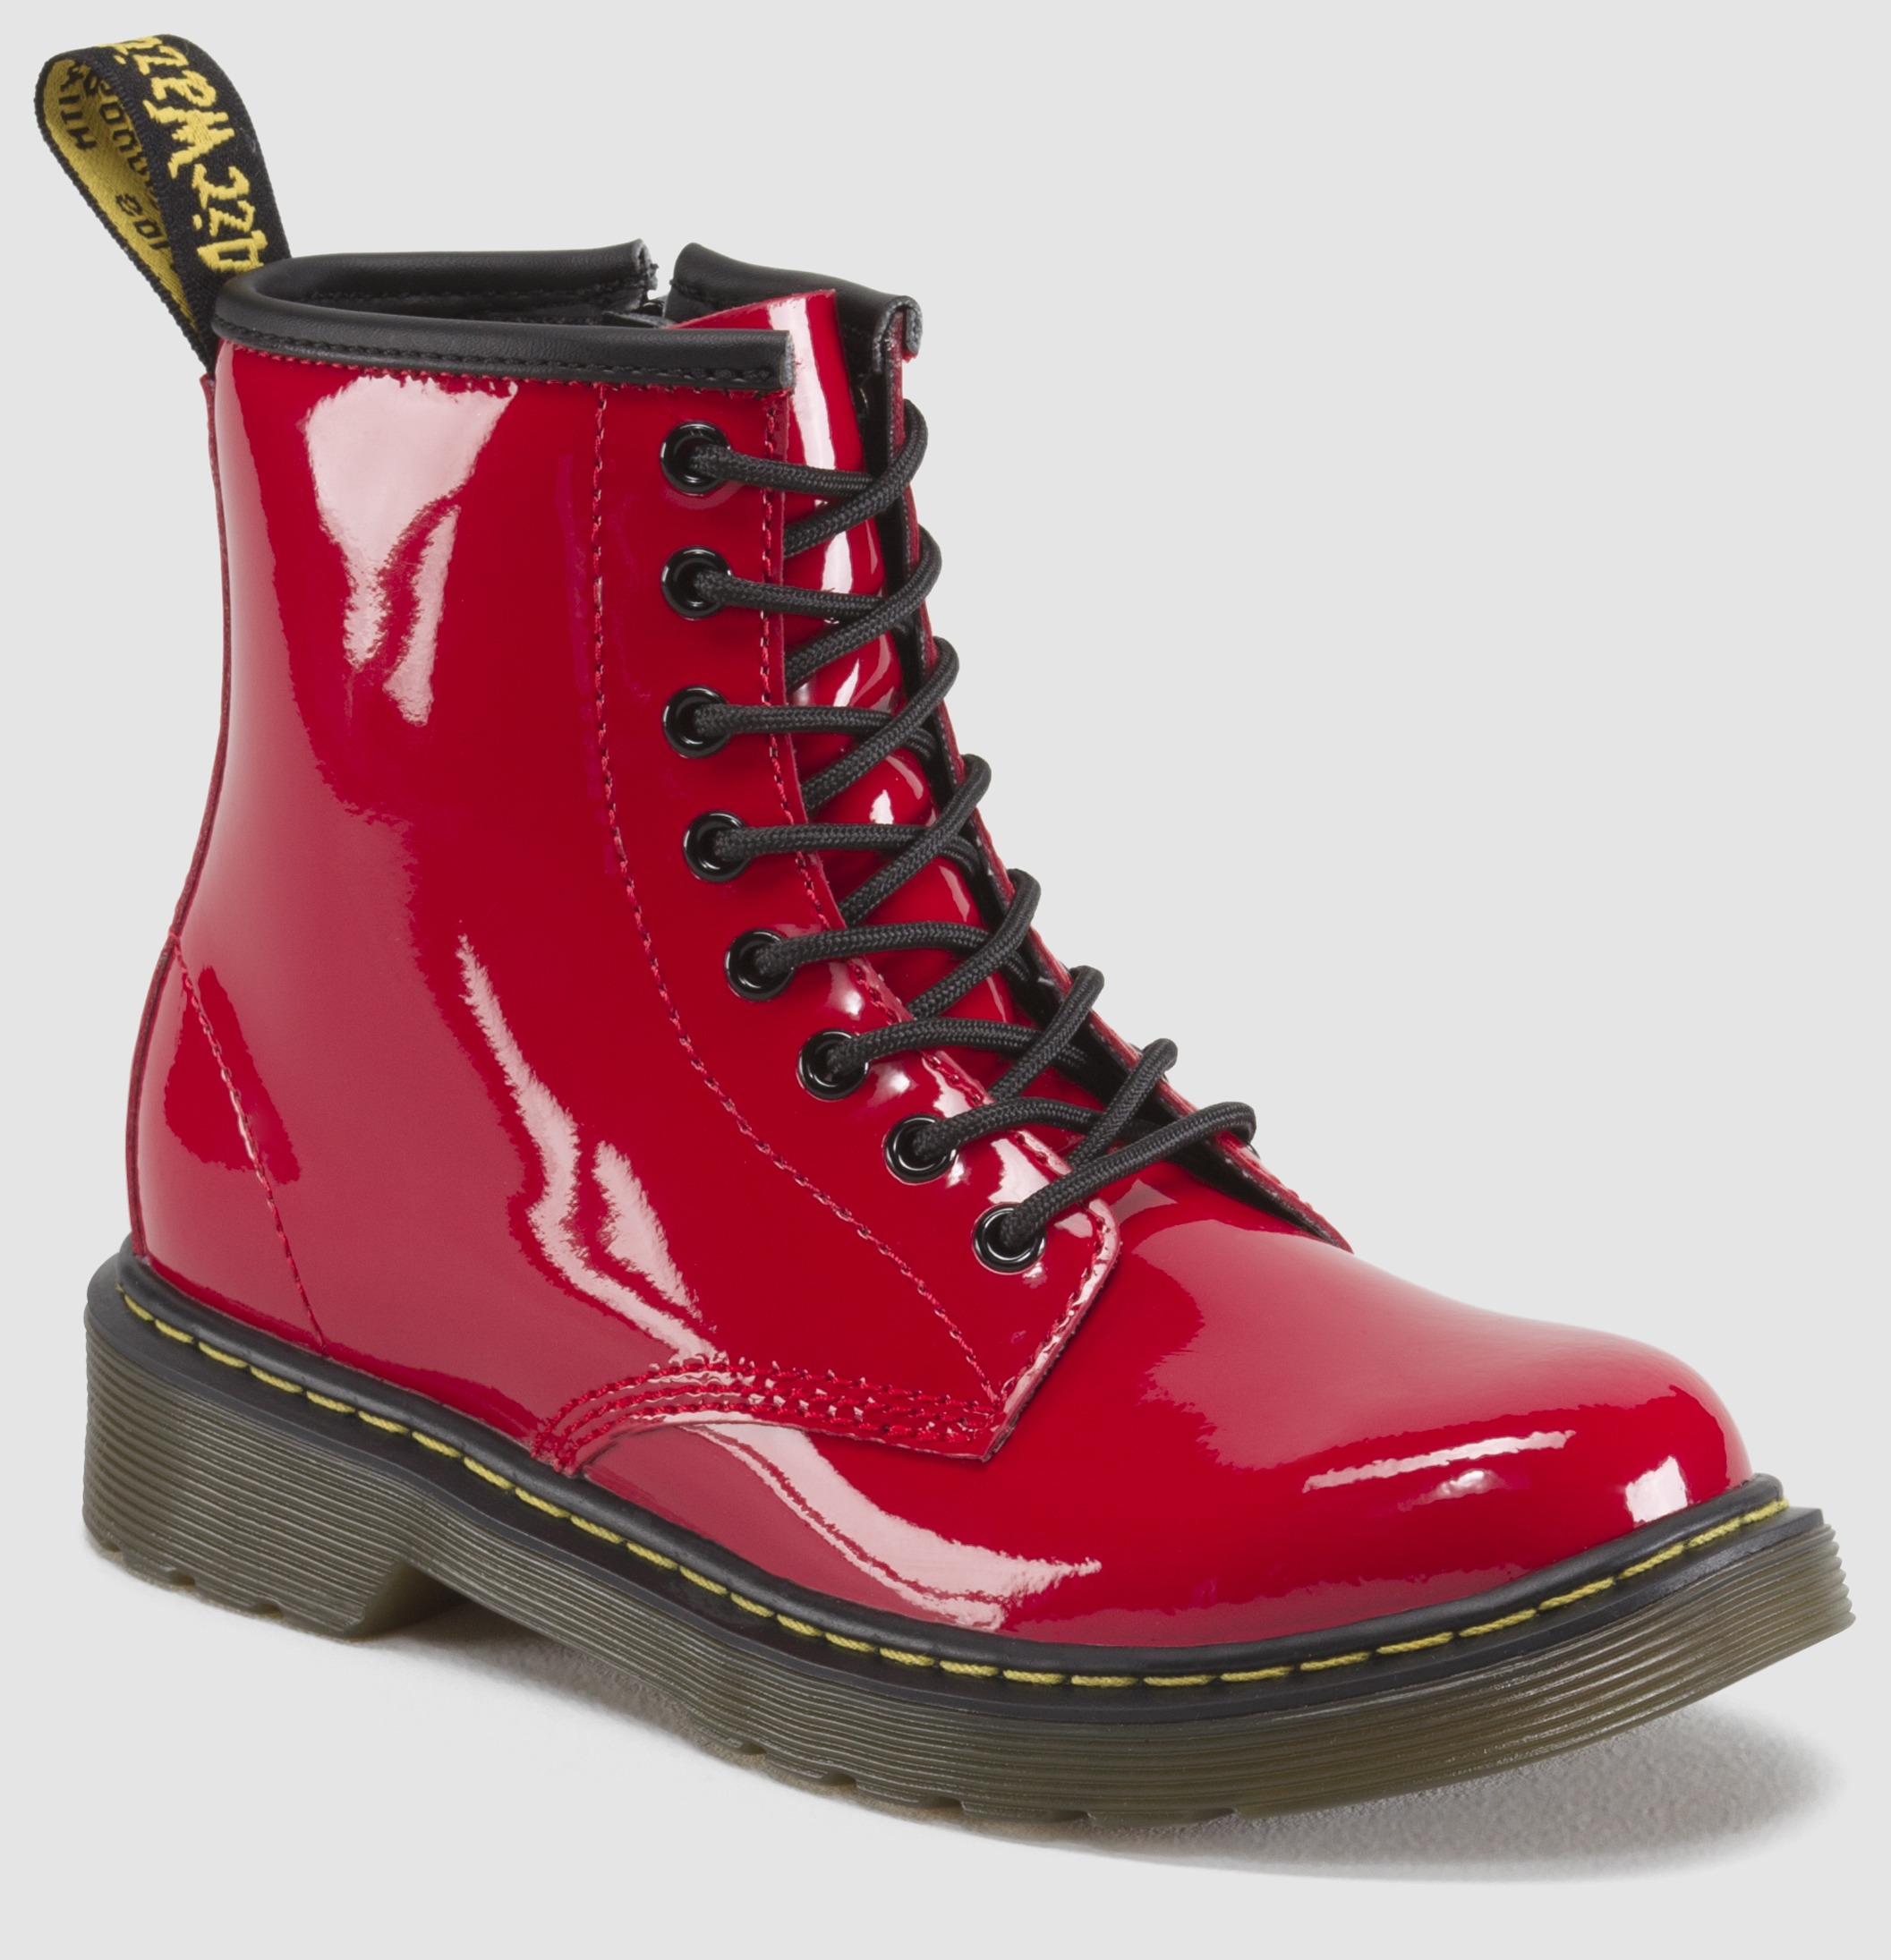 Girls' Boots Shop our fabulous range of girls' boots and you'll find a pair perfect for every occasion. We've all the latest styles like classic ankle boots for girls, biker boots, and calf length boots.